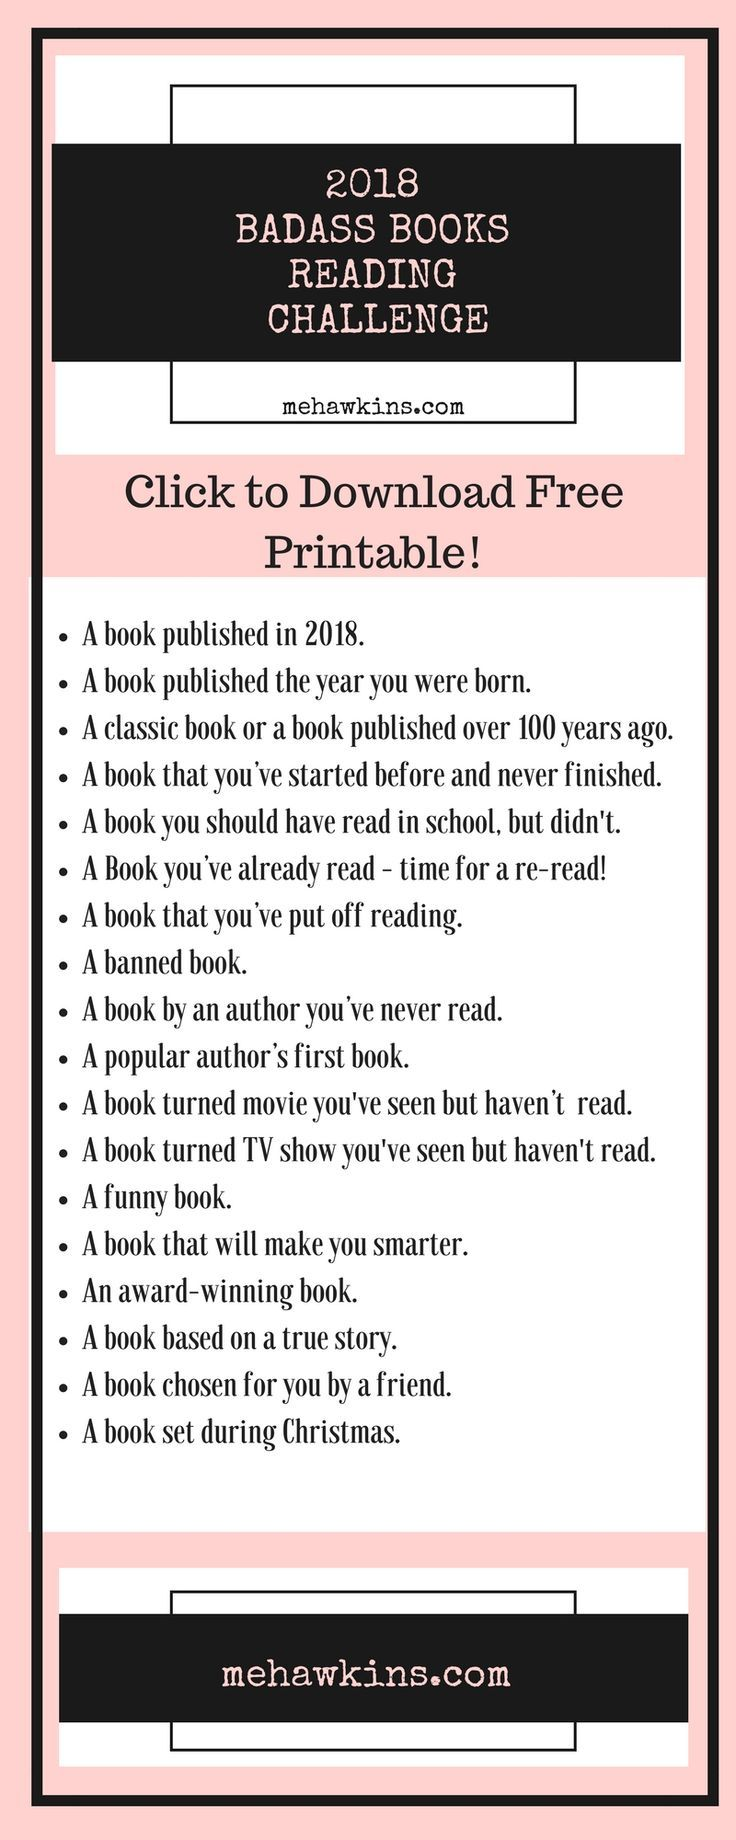 Best 25 book challenge ideas on pinterest reading challenge best 25 book challenge ideas on pinterest reading challenge this year and reading lists fandeluxe Images